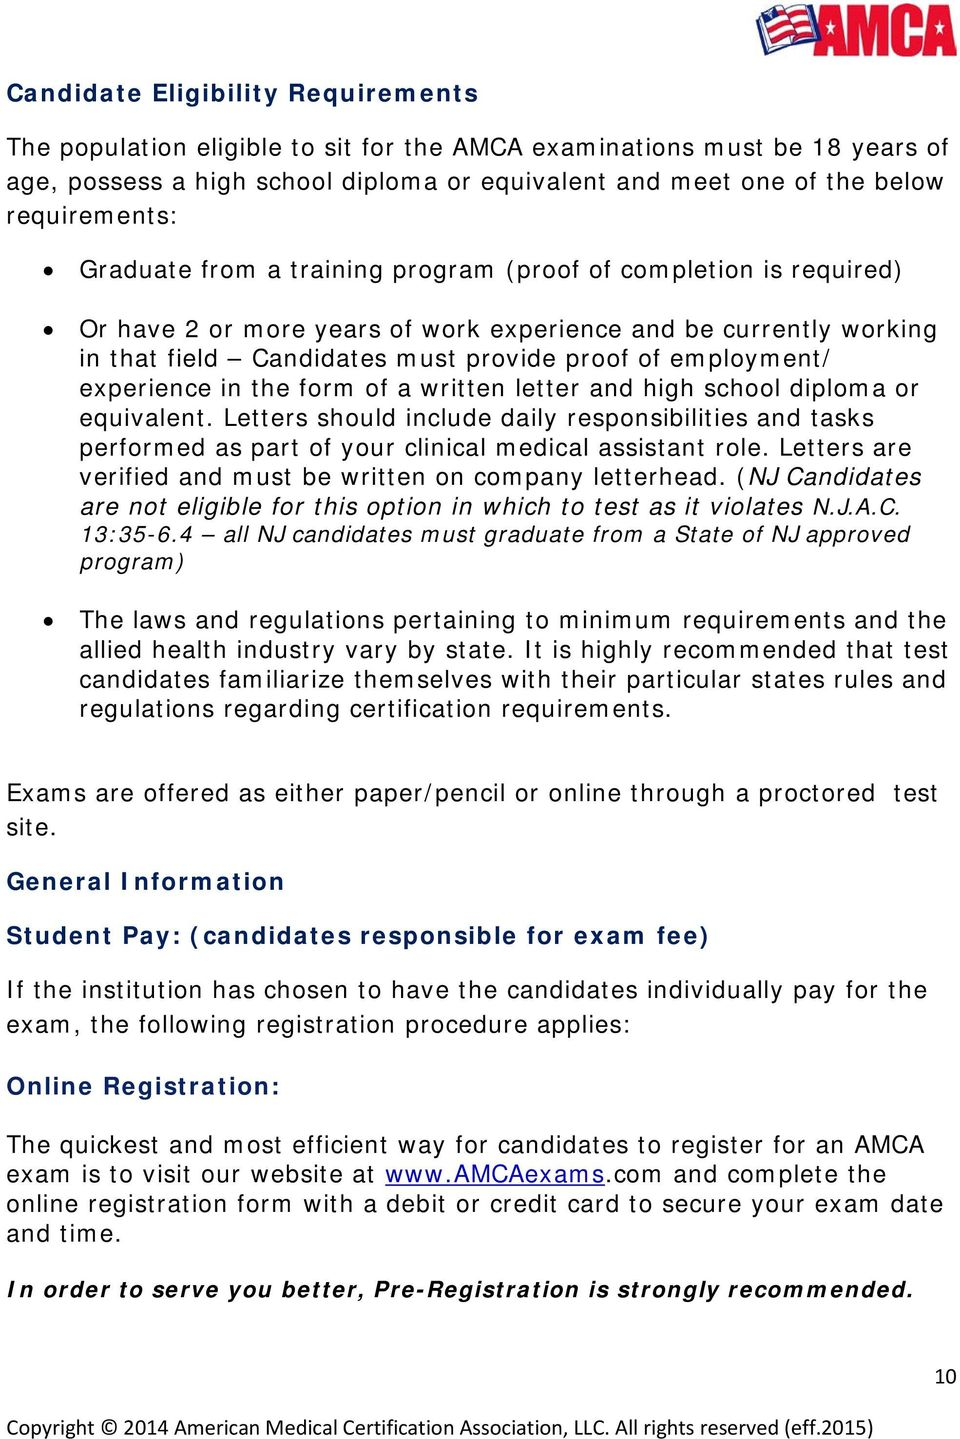 AMCA Candidate Handbook Clinical Medical Assistant Certification - PDF